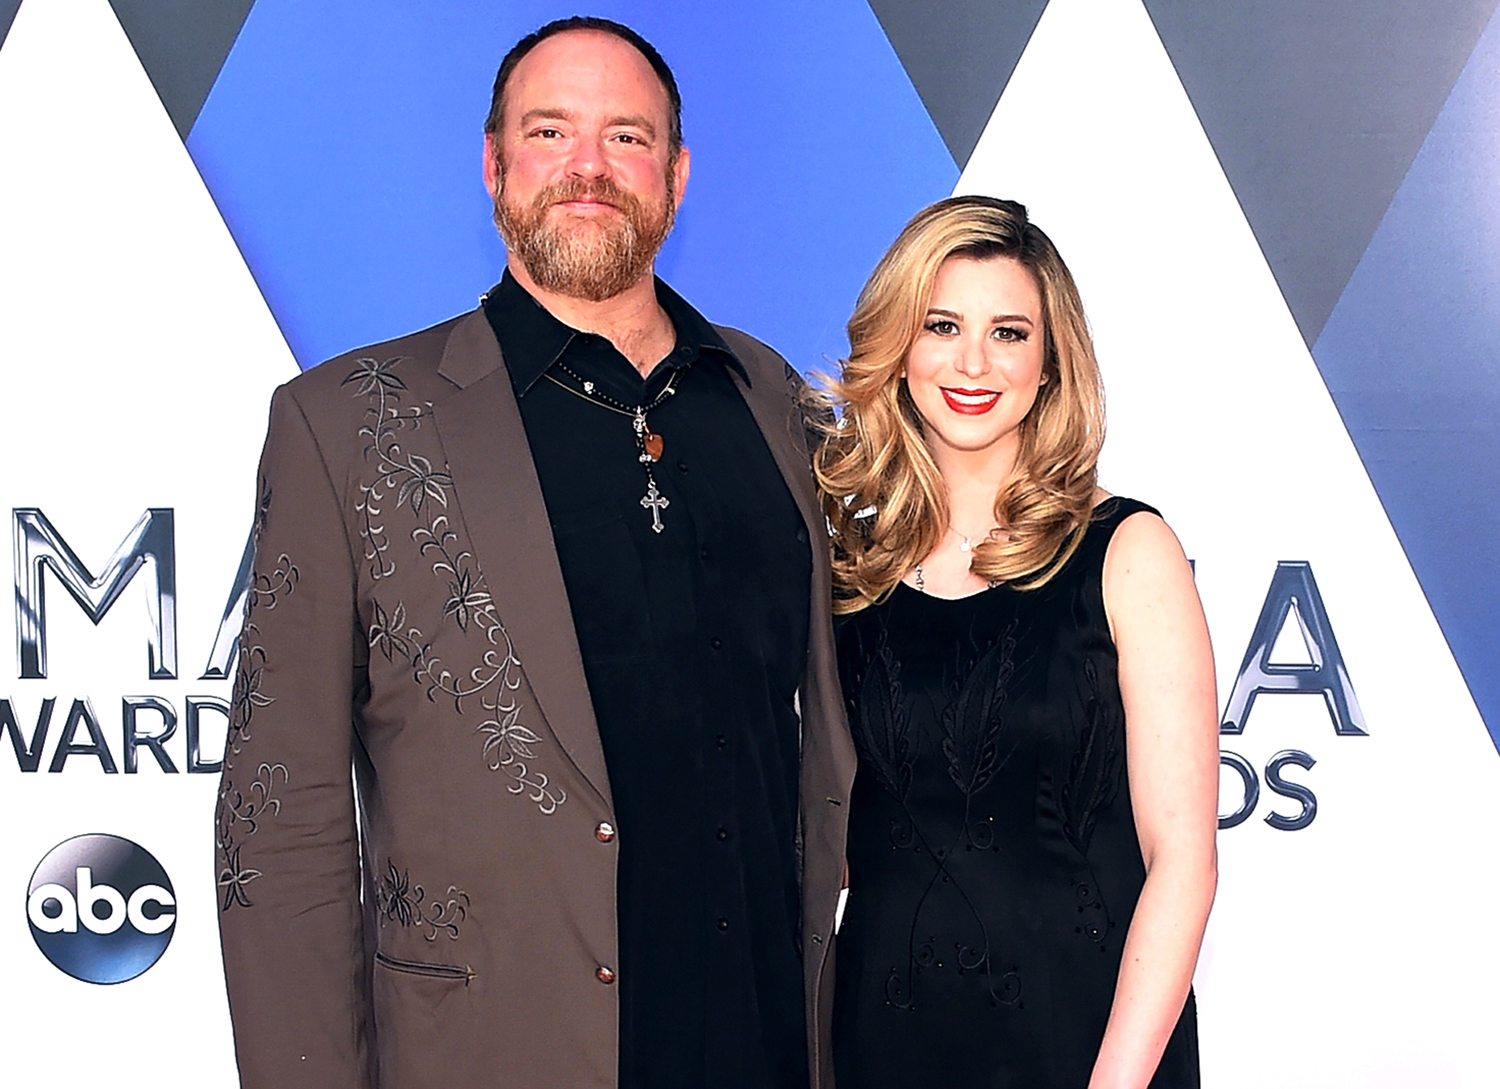 John Carter Cash and singer/songwriter and Ana Cristina attend the 49th annual CMA Awards at the Bridgestone Arena on November 4, 2015 in Nashville, Tennessee.